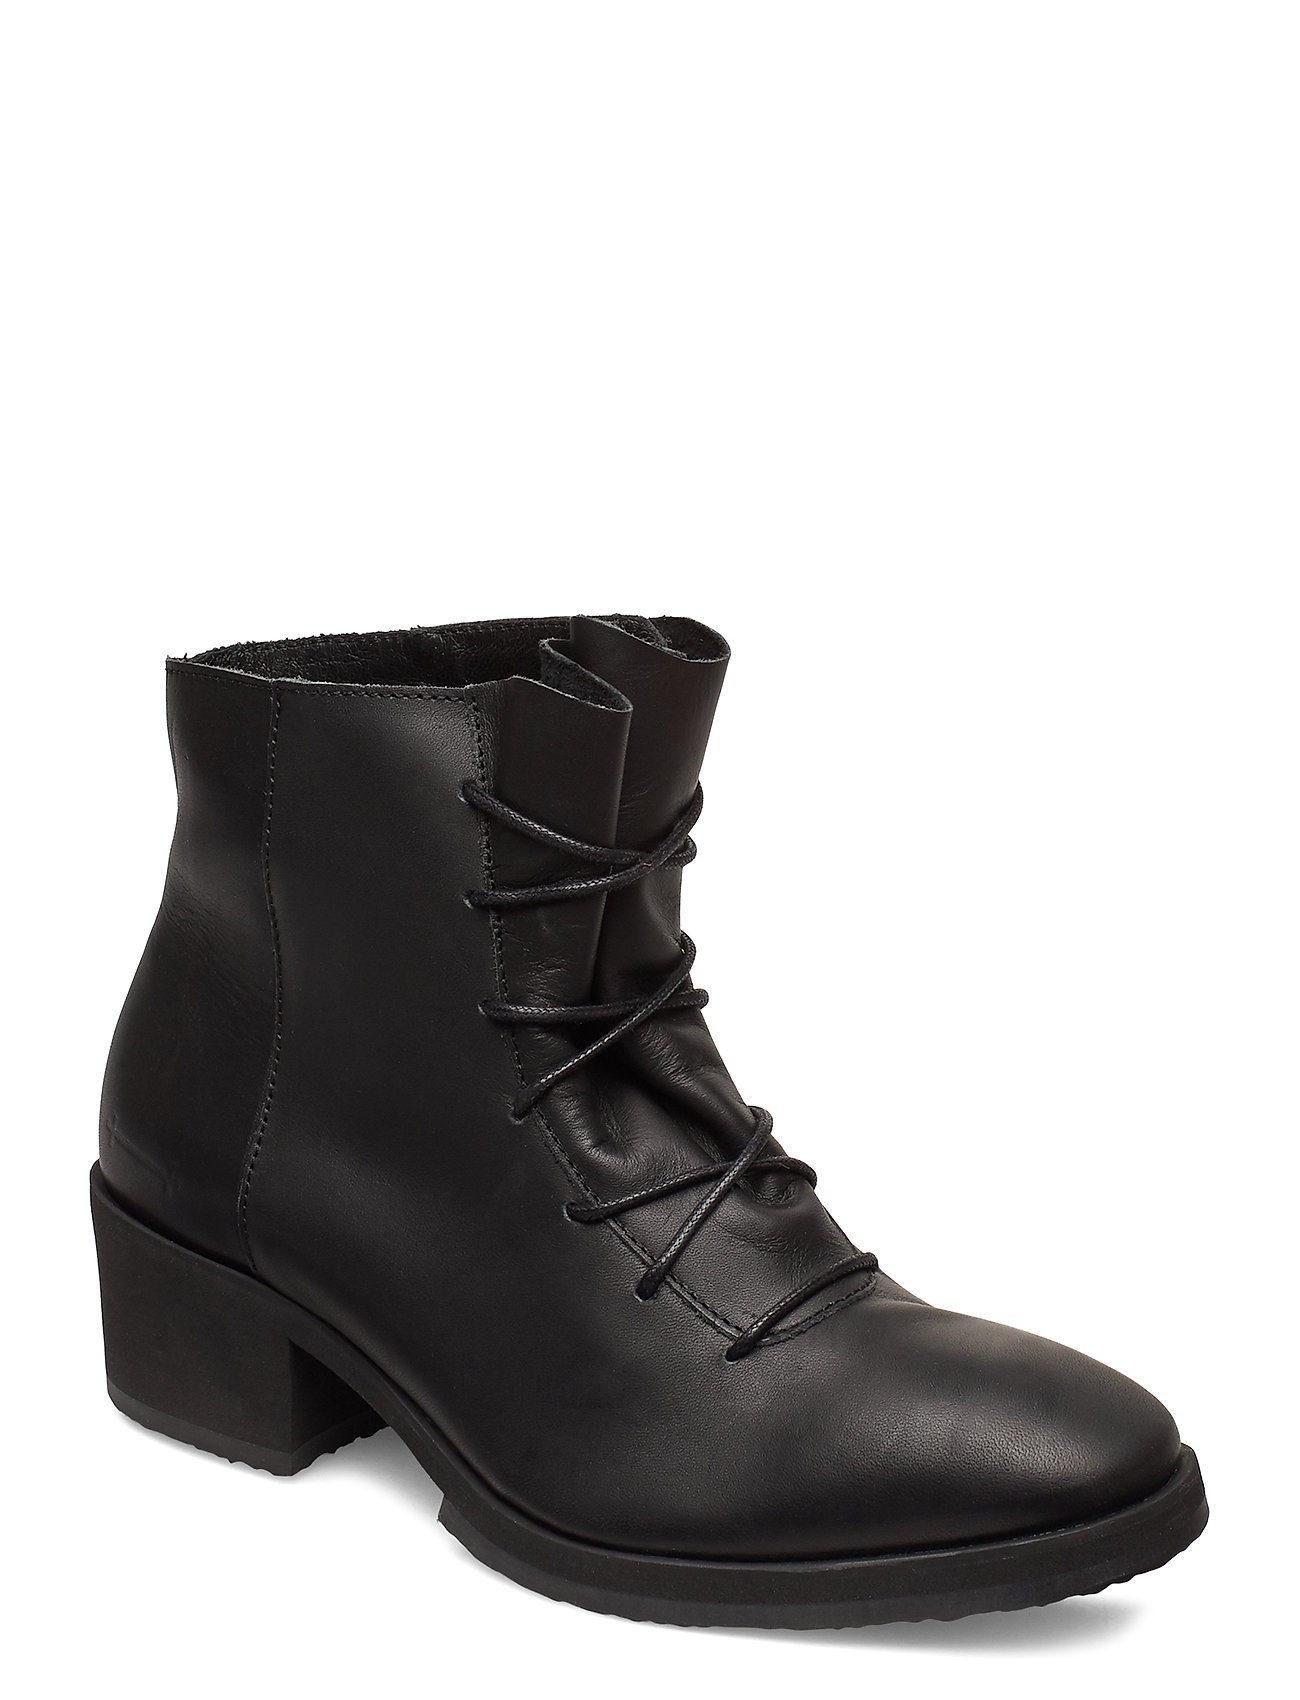 Image of Yatfai Boot Black Leather Shoes Boots Ankle Boots Ankle Boot - Heel Sort Gram (3455521893)